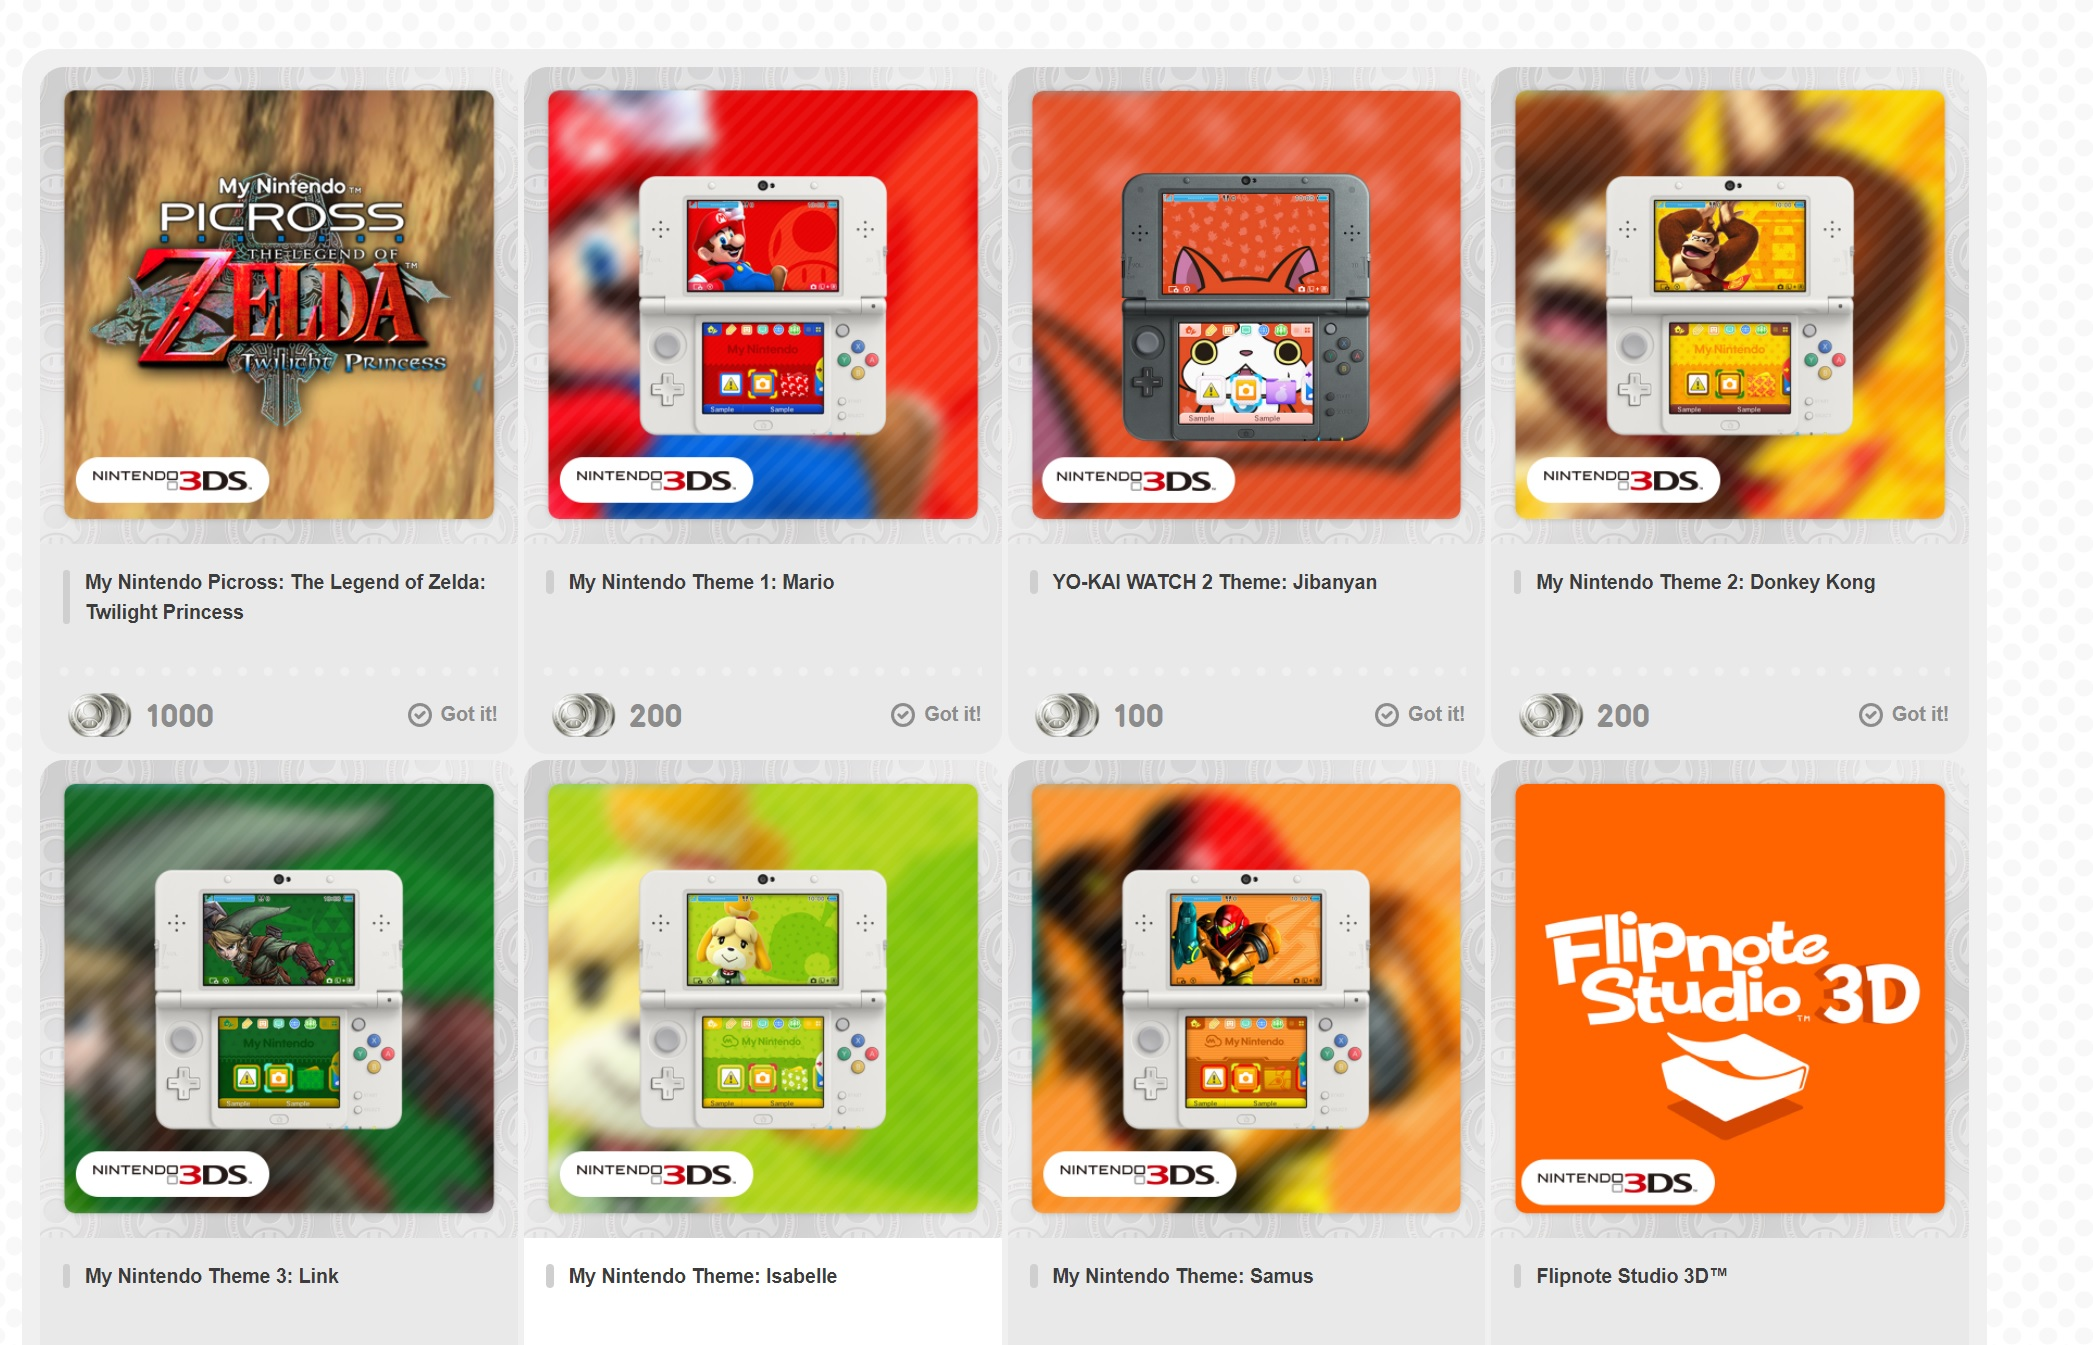 My Nintendo just dumped 3DS/Wii U discounts, so hopefully Switch perks are on the way screenshot